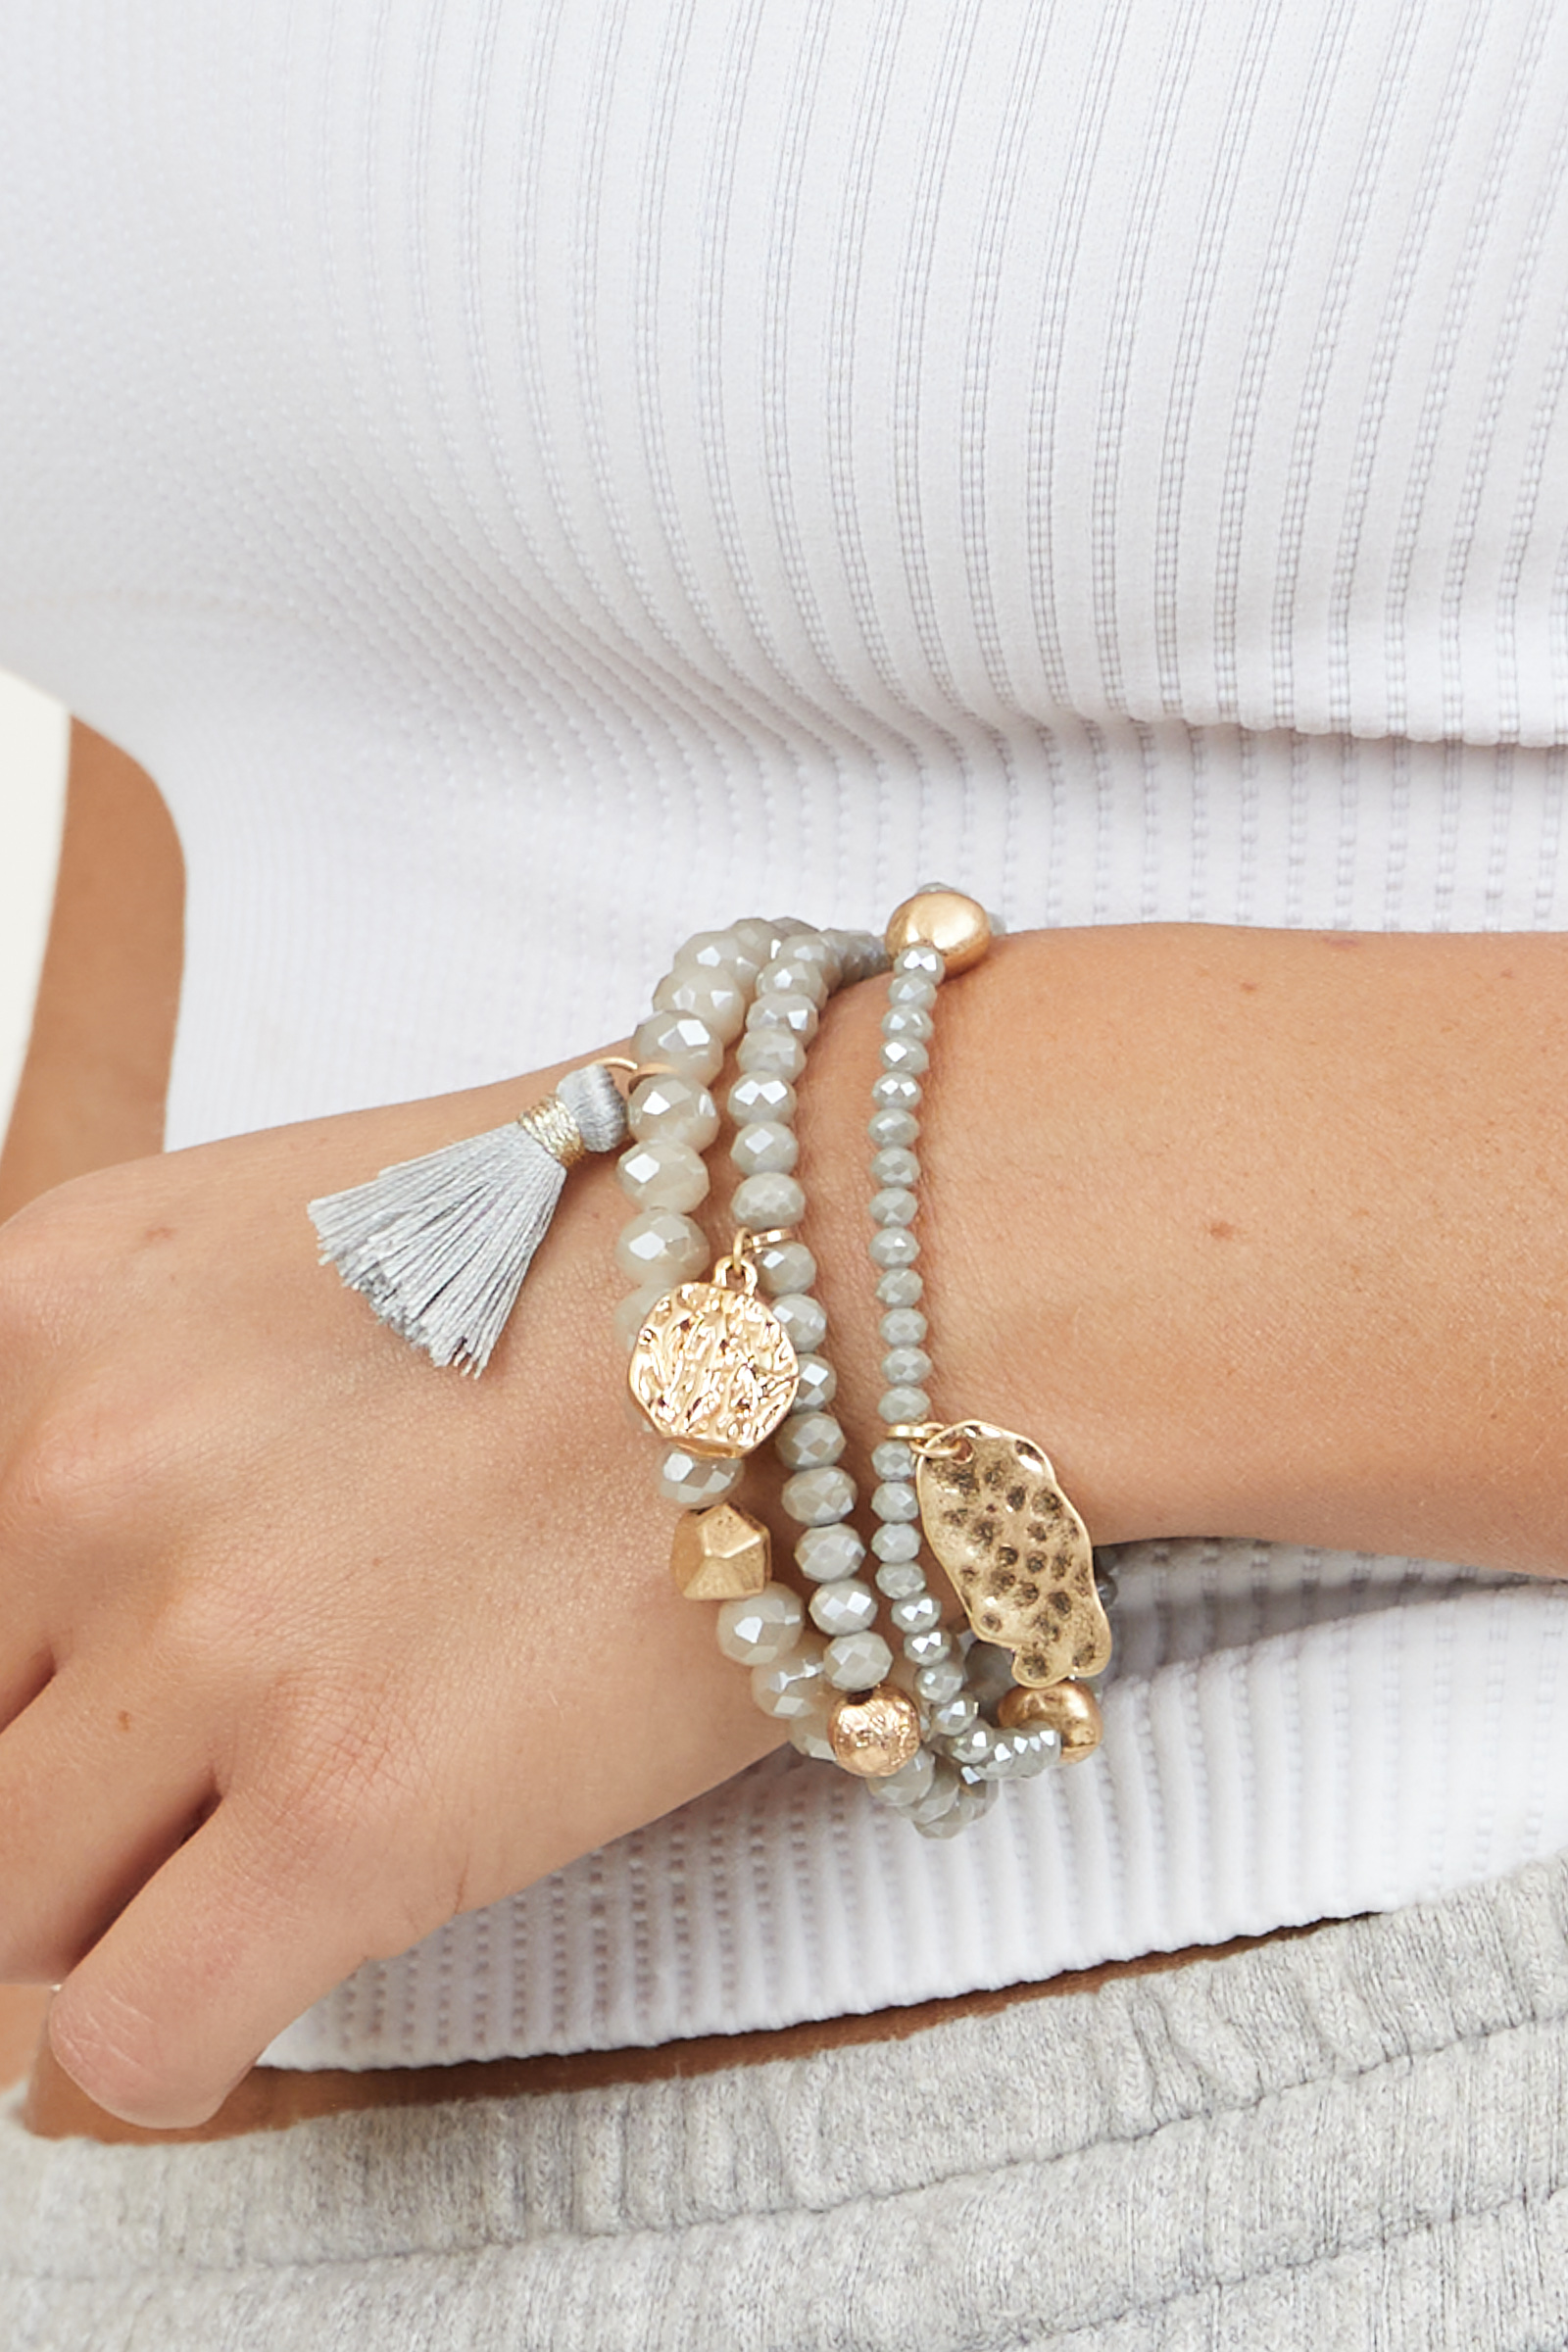 Taupe and Gold Beaded Bracelet Set with Tassel and Charms